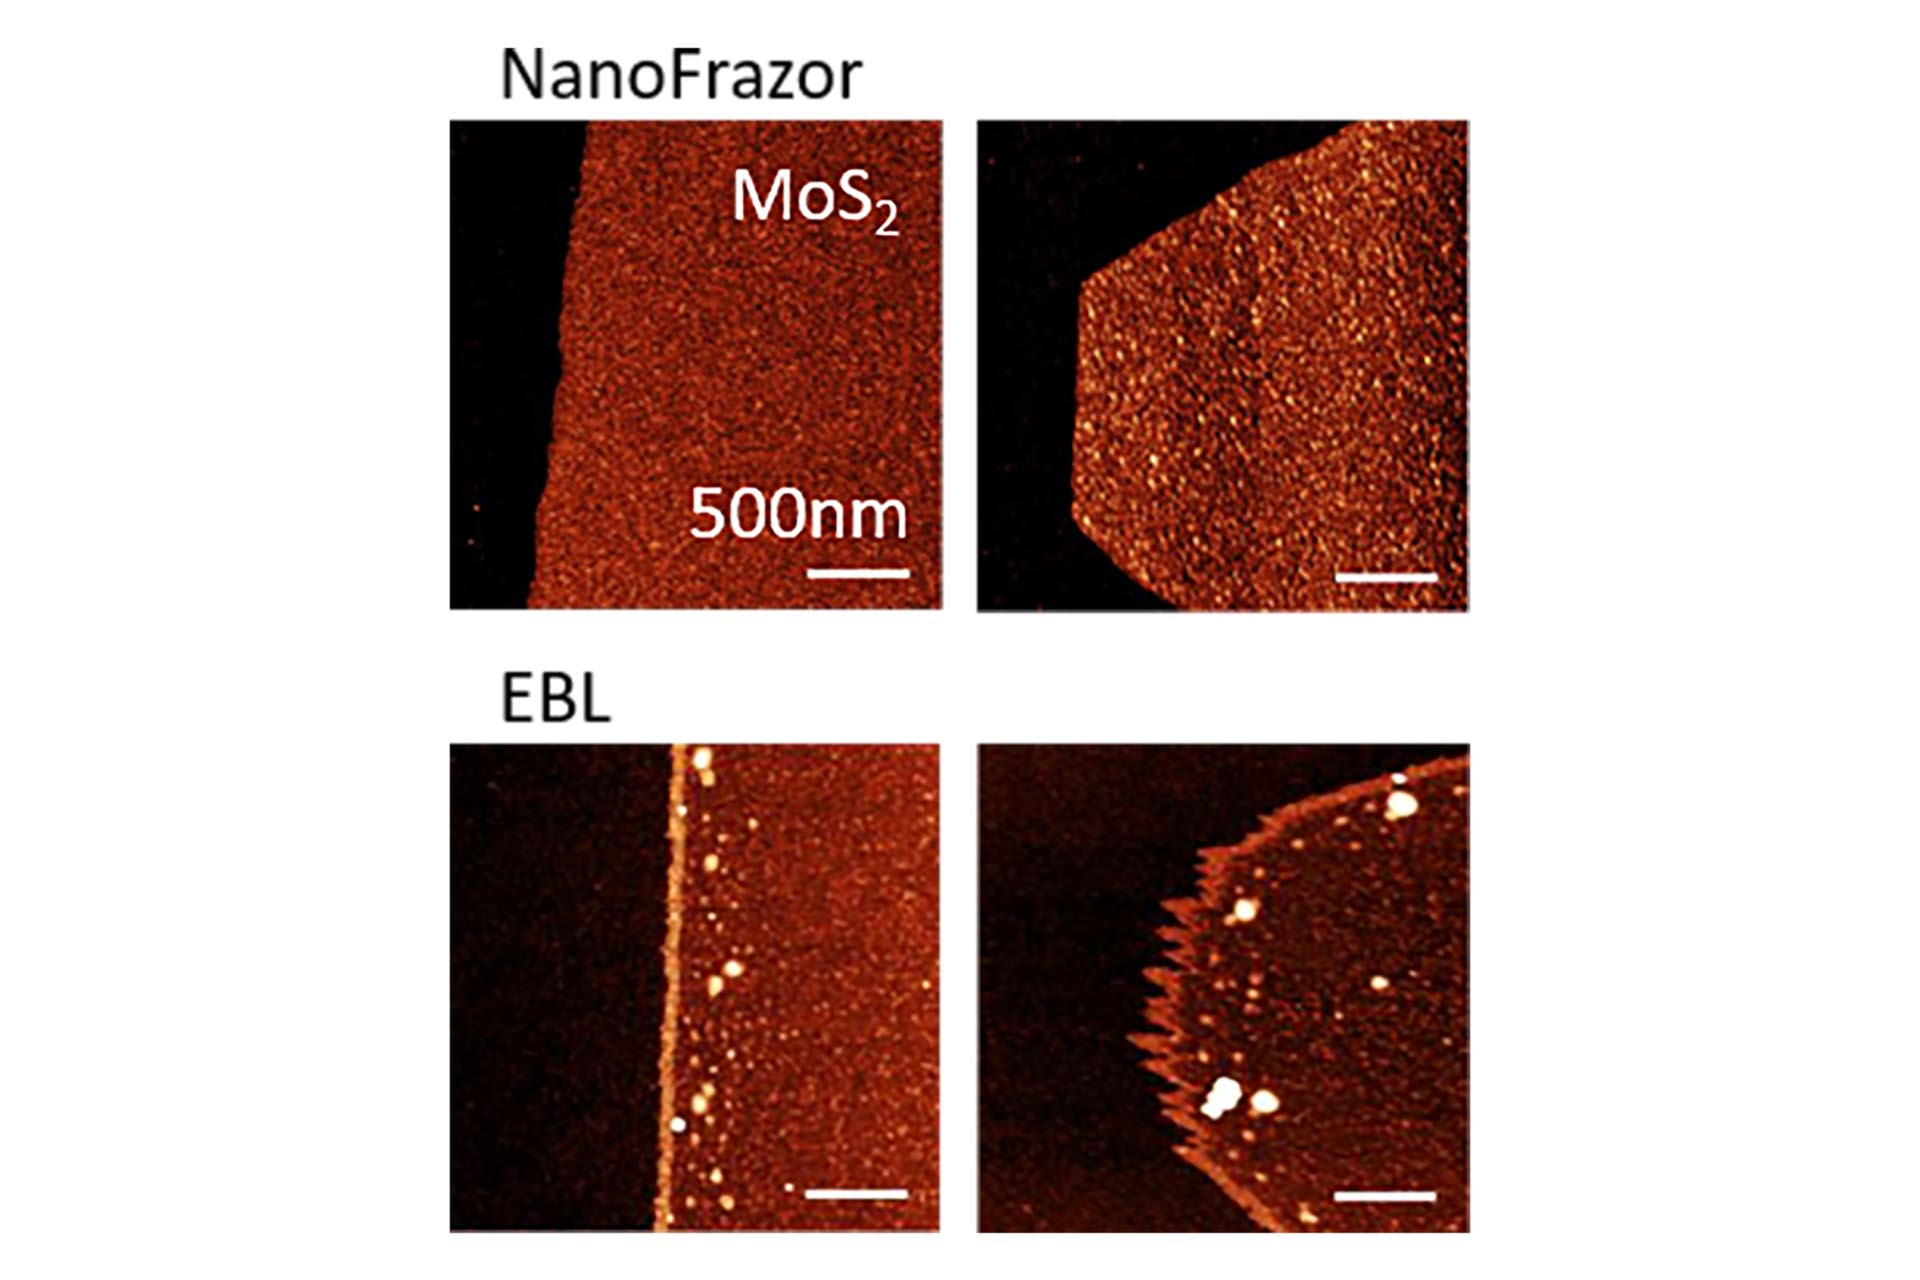 A side-by-side comparison of NanoFrazor- and electron beam lithography (EBL)-patterned contact electrodes on single-layer MoS2 flakes. (Courtesy of Prof. Elisa Riedo, NYU, publication Zheng et al. Nat. Electr. 2019)